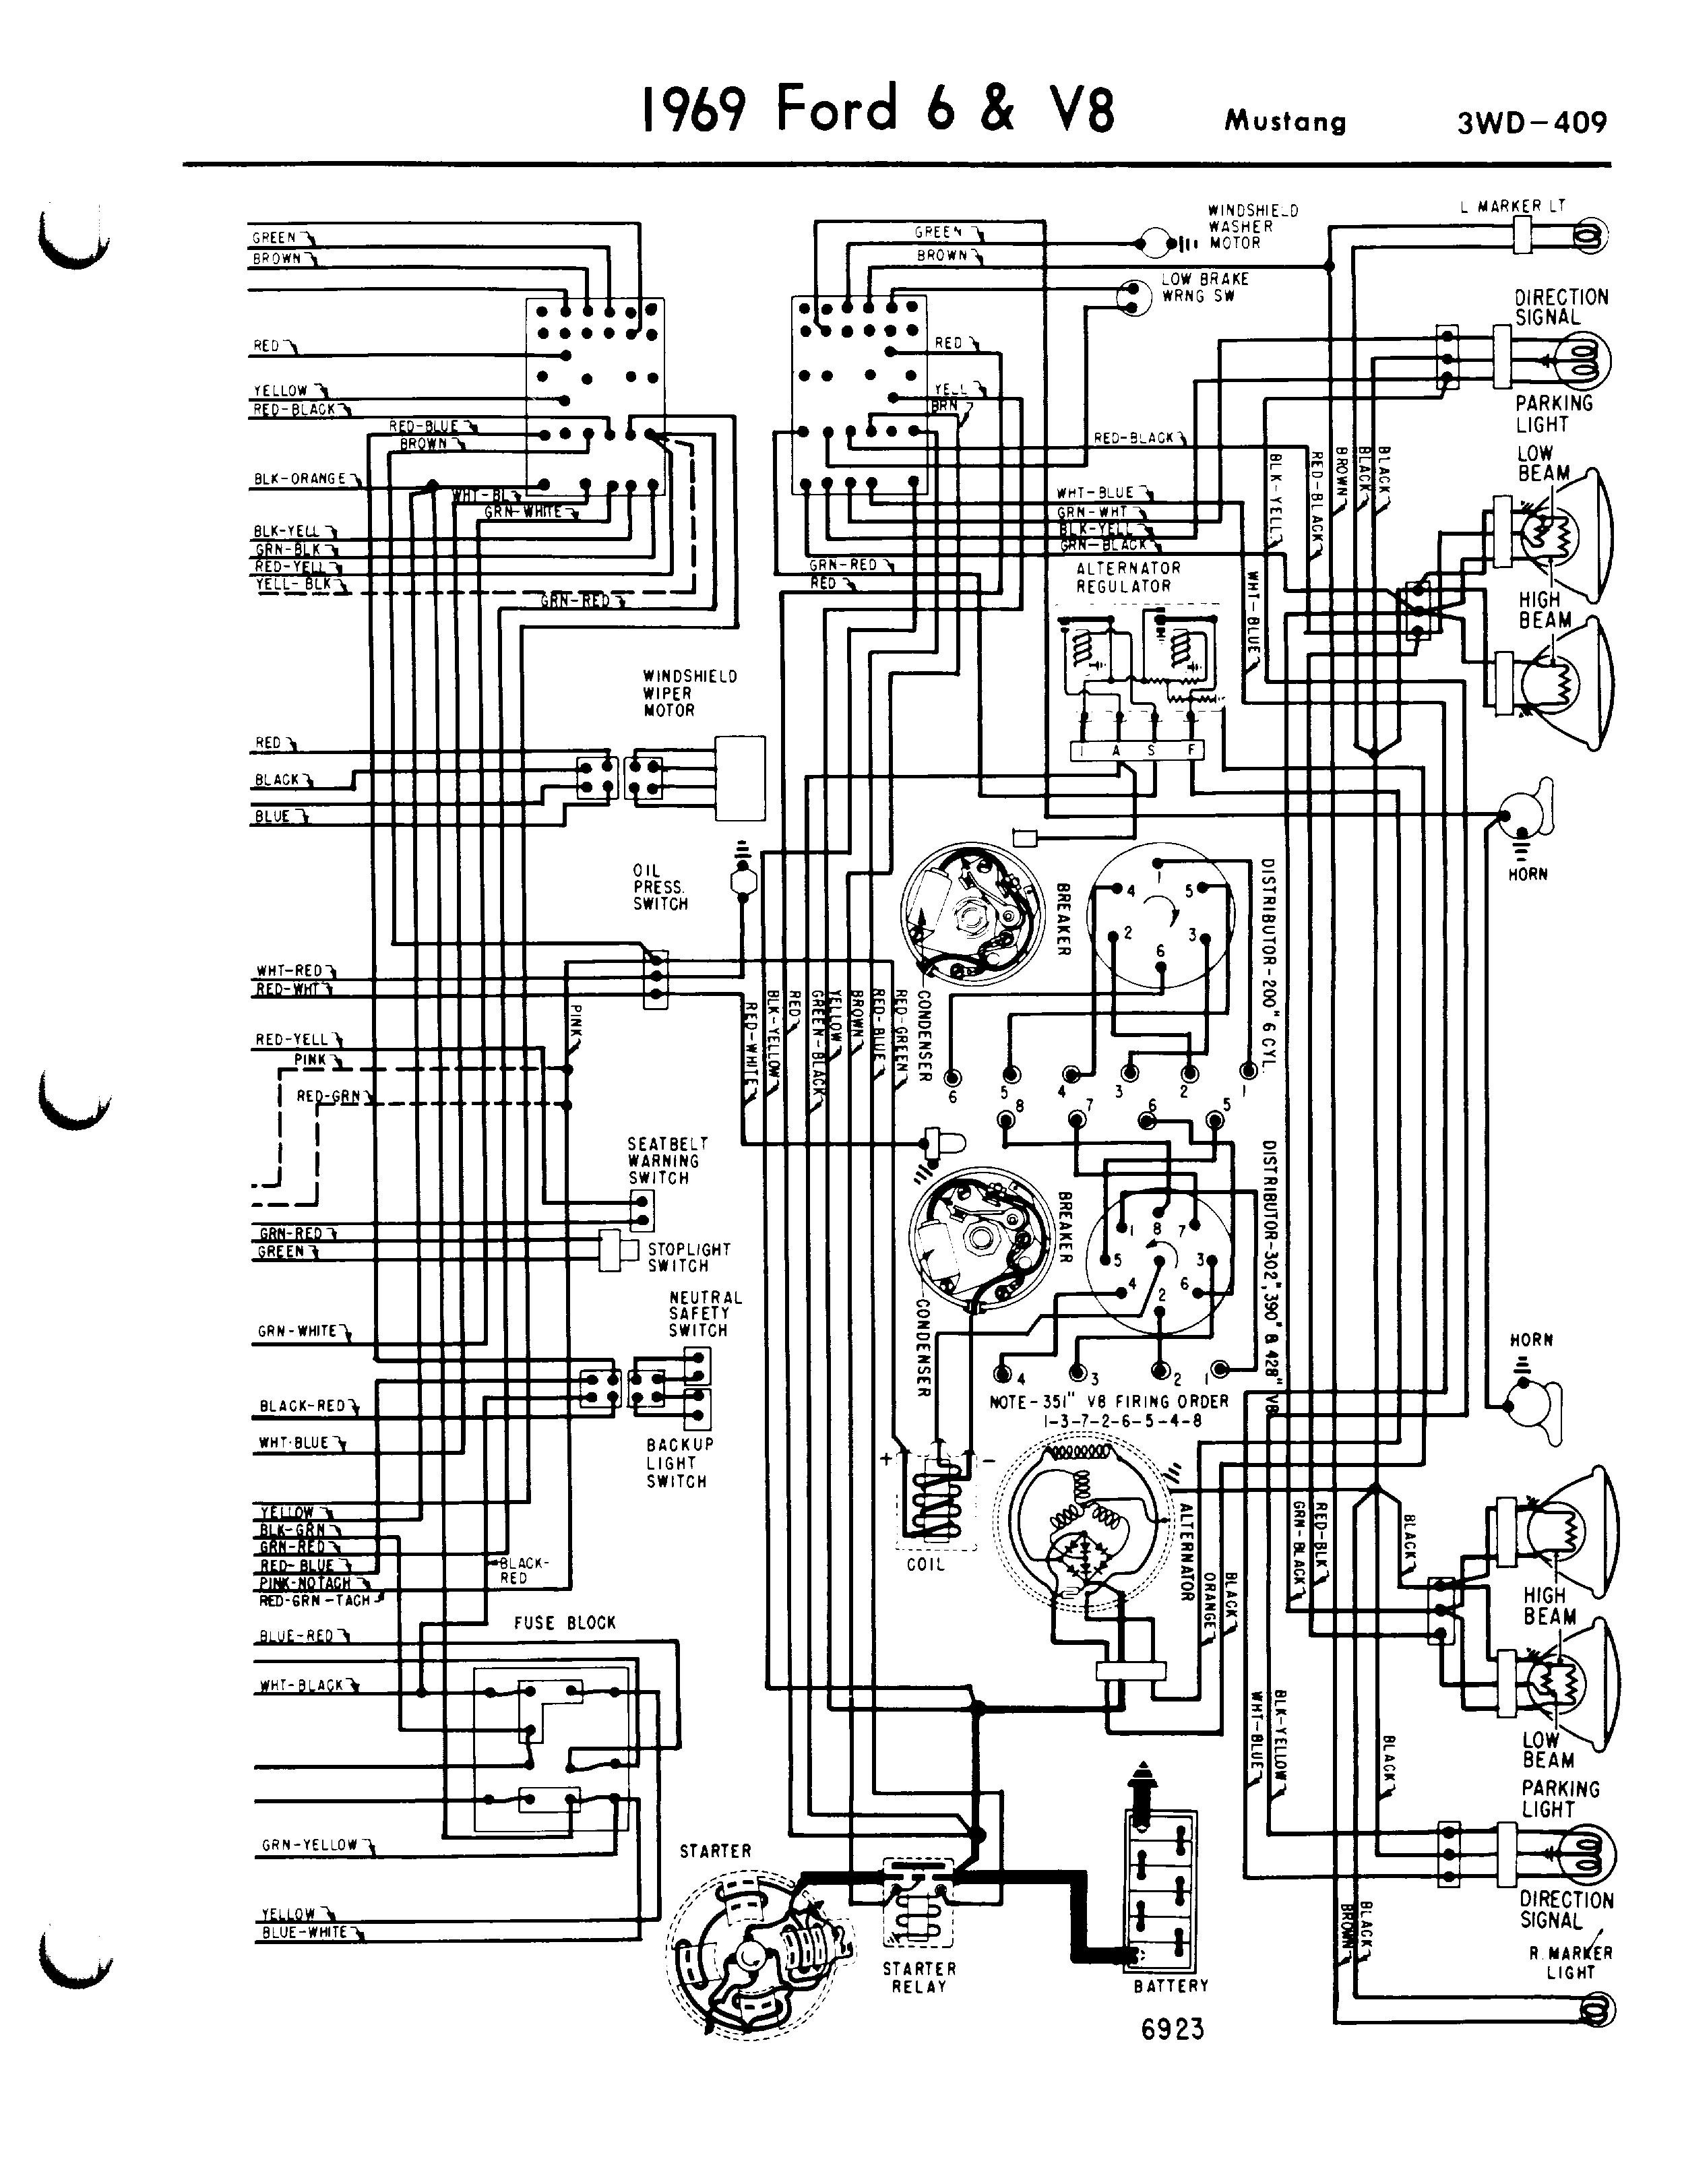 1972 Ford F100 Alternator Wiring Harness Electrical Diagrams 1955 F250 Diagram U2022